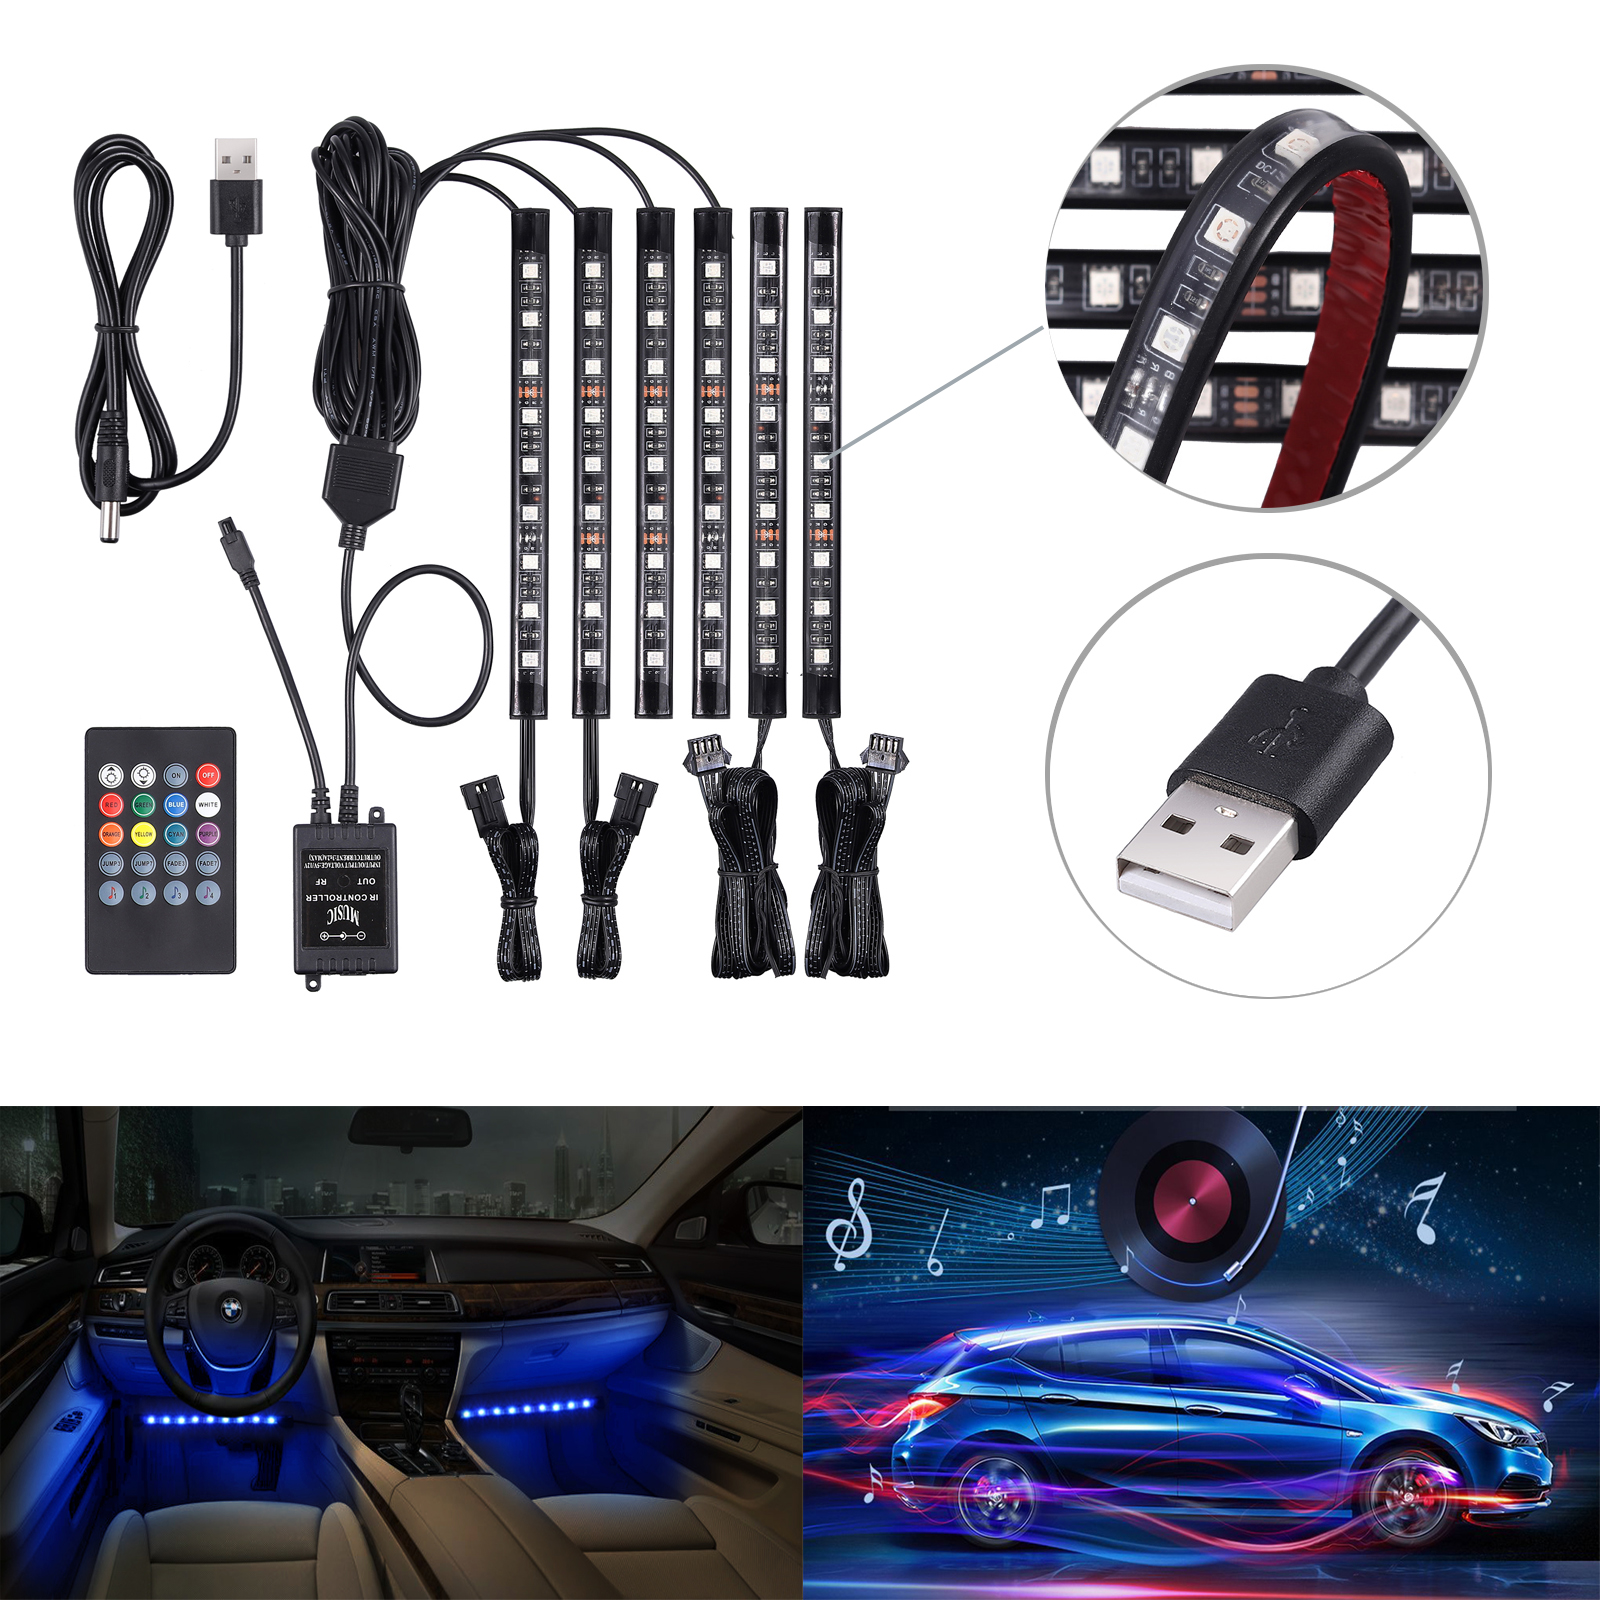 6X 9LED 7Color RGB Neon Strip Light Car Interior Lamp 12V Music Control UK